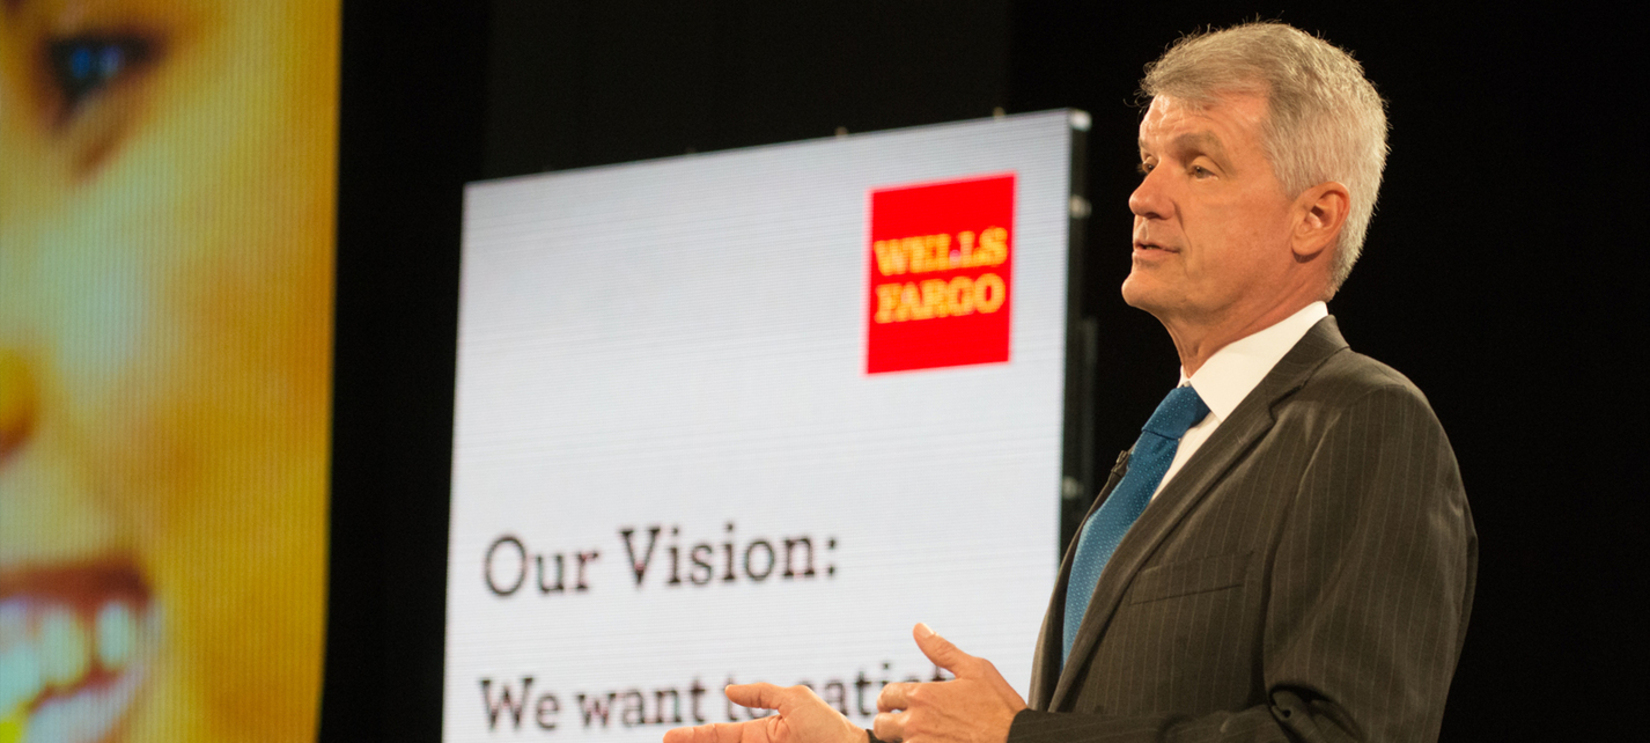 Tim Sloan Is Out. Do You Want to Run Wells Fargo?